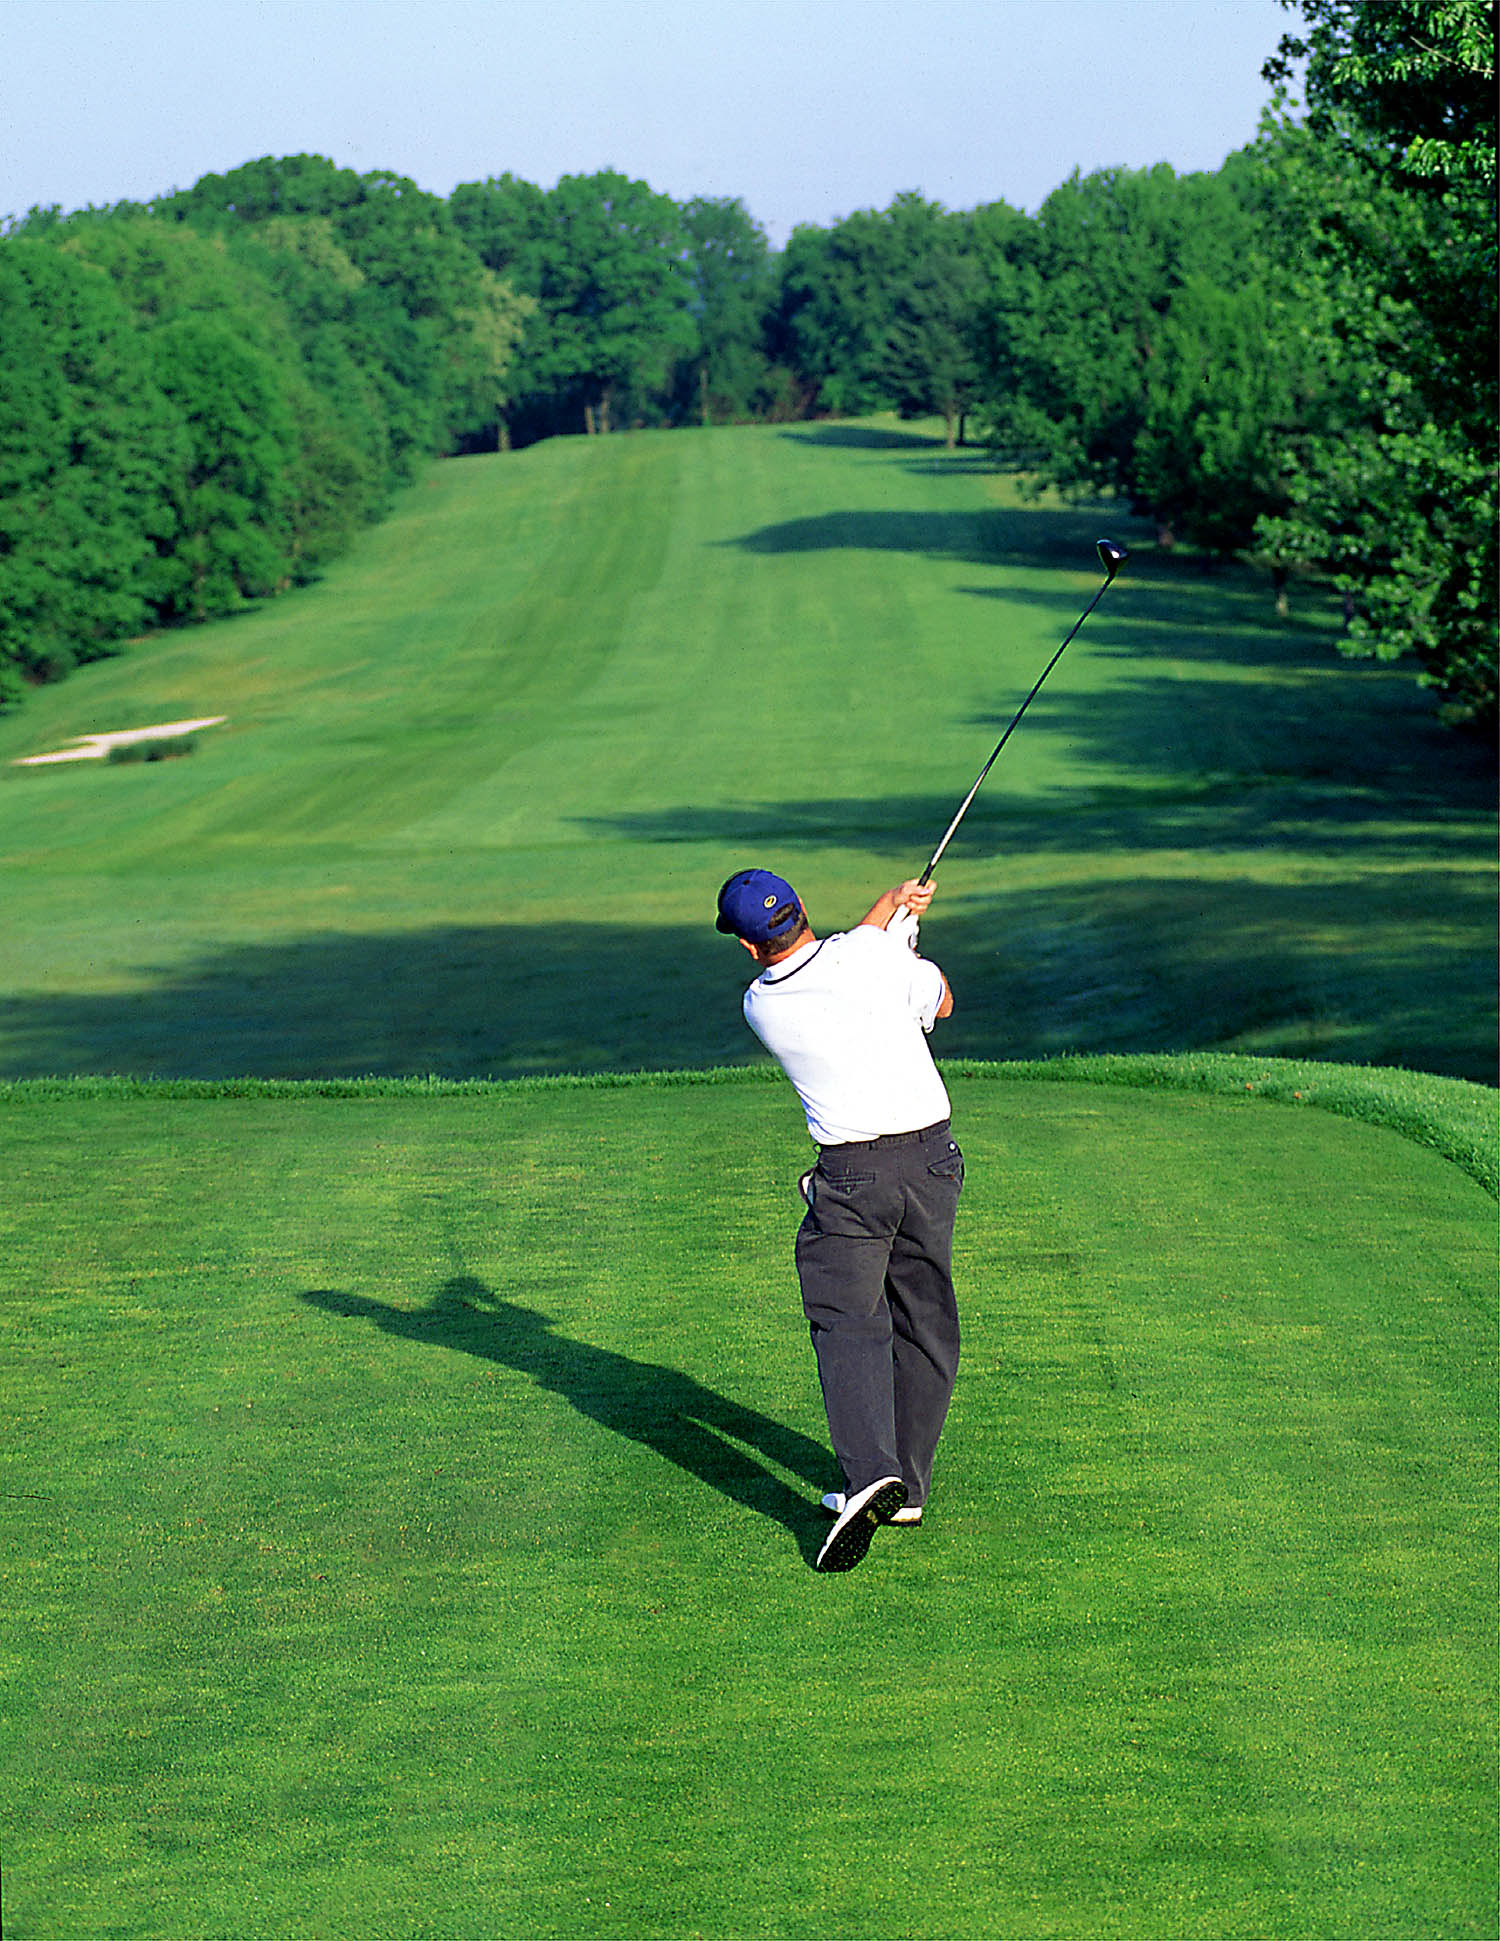 % Discounts $ Or More In For The th Open Championship At 3 Balls Golf. Enjoy this exclusive offer: % off $ or more in for the th Open Championship at 3 Balls Golf. Just feel free to buy what you like at. Expect the unexpected.